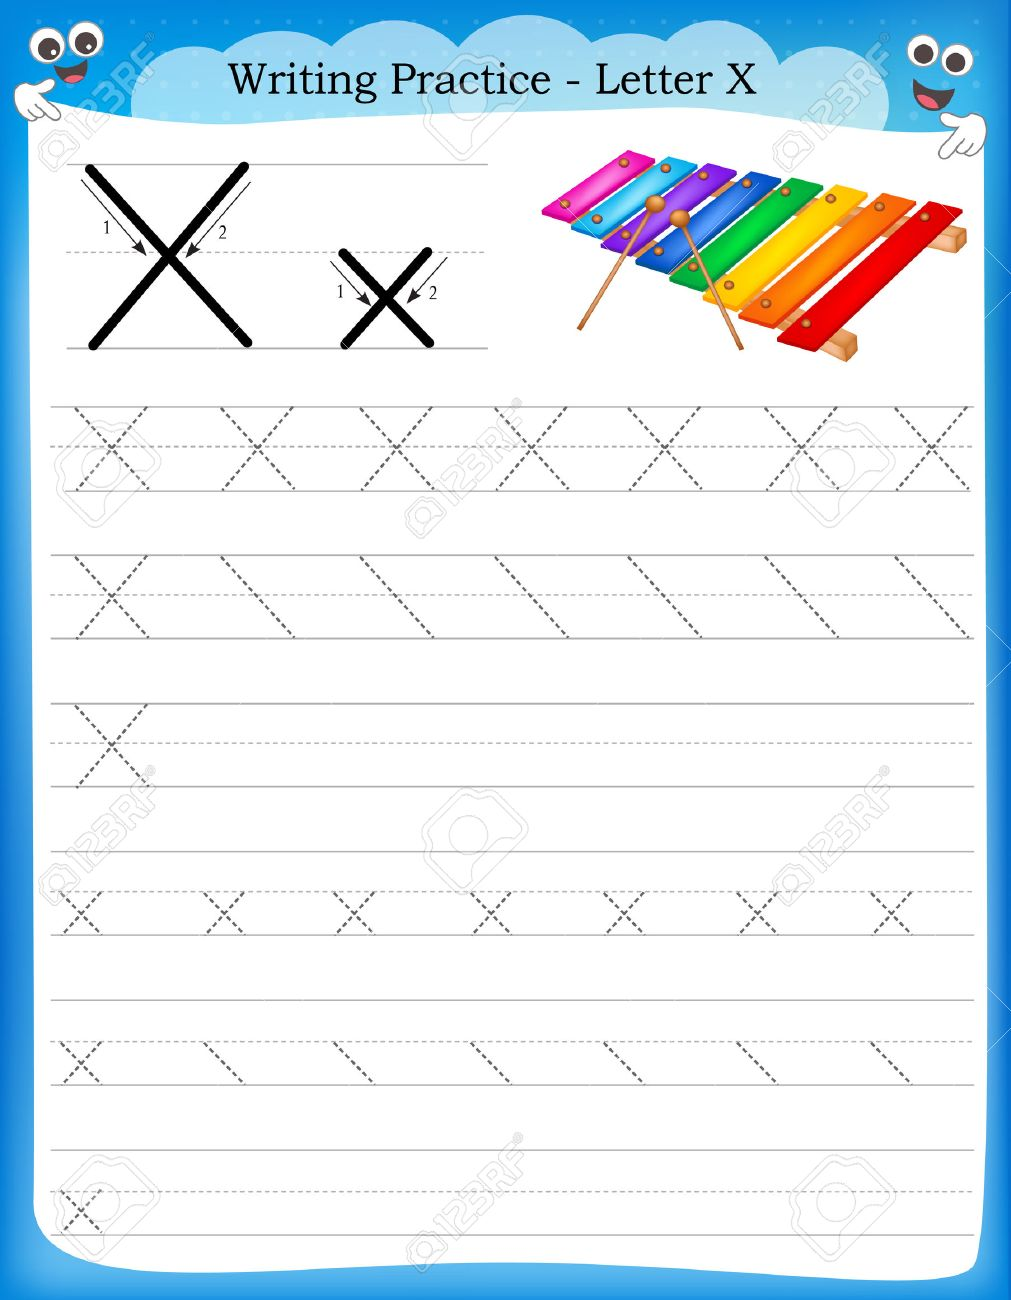 Vector   Writing Practice Letter X Printable Worksheet With Clip Art For  Preschool / Kindergarten Kids To Improve Basic Writing Skills